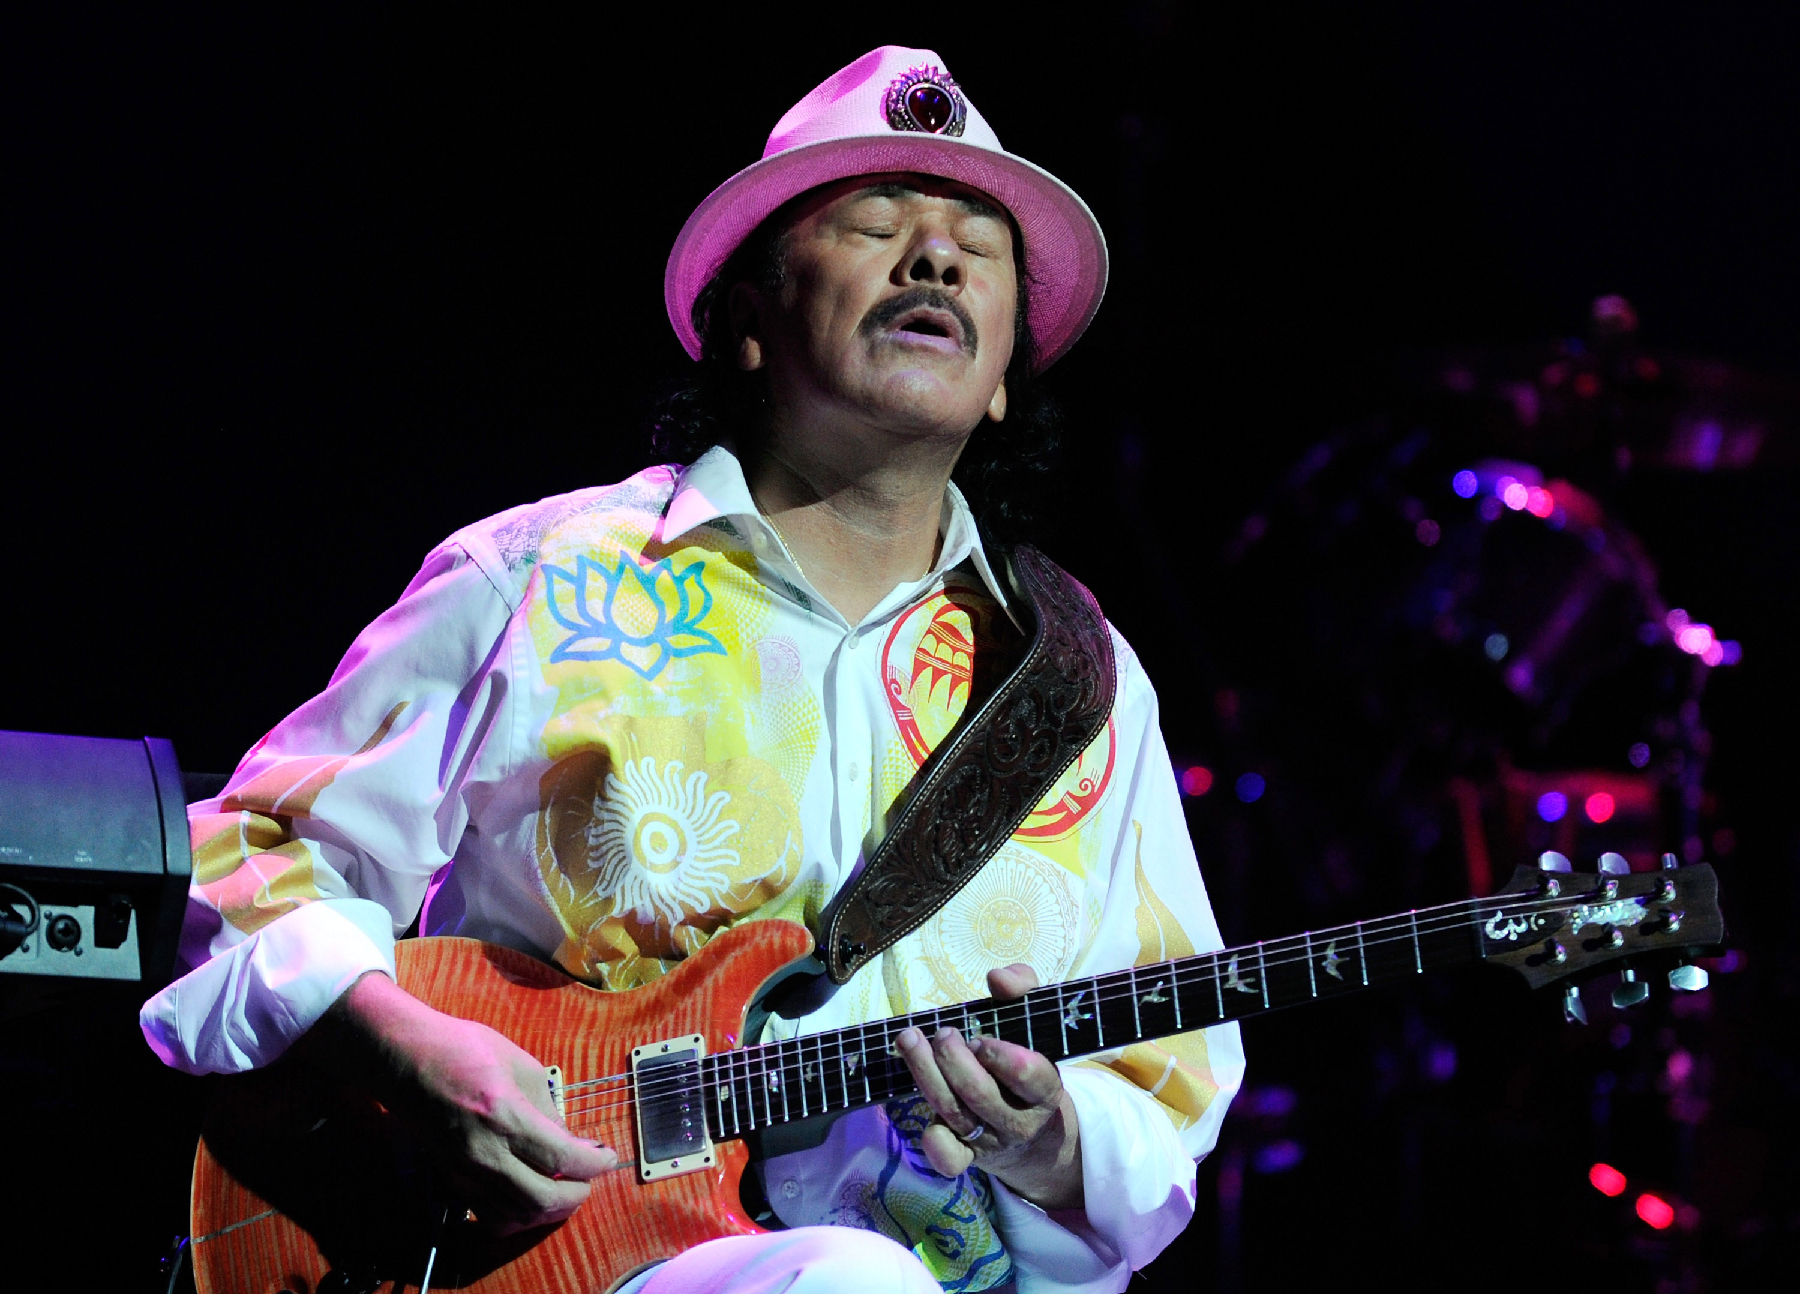 Carlos Santana on Drugs, Healing and His Message for Obama